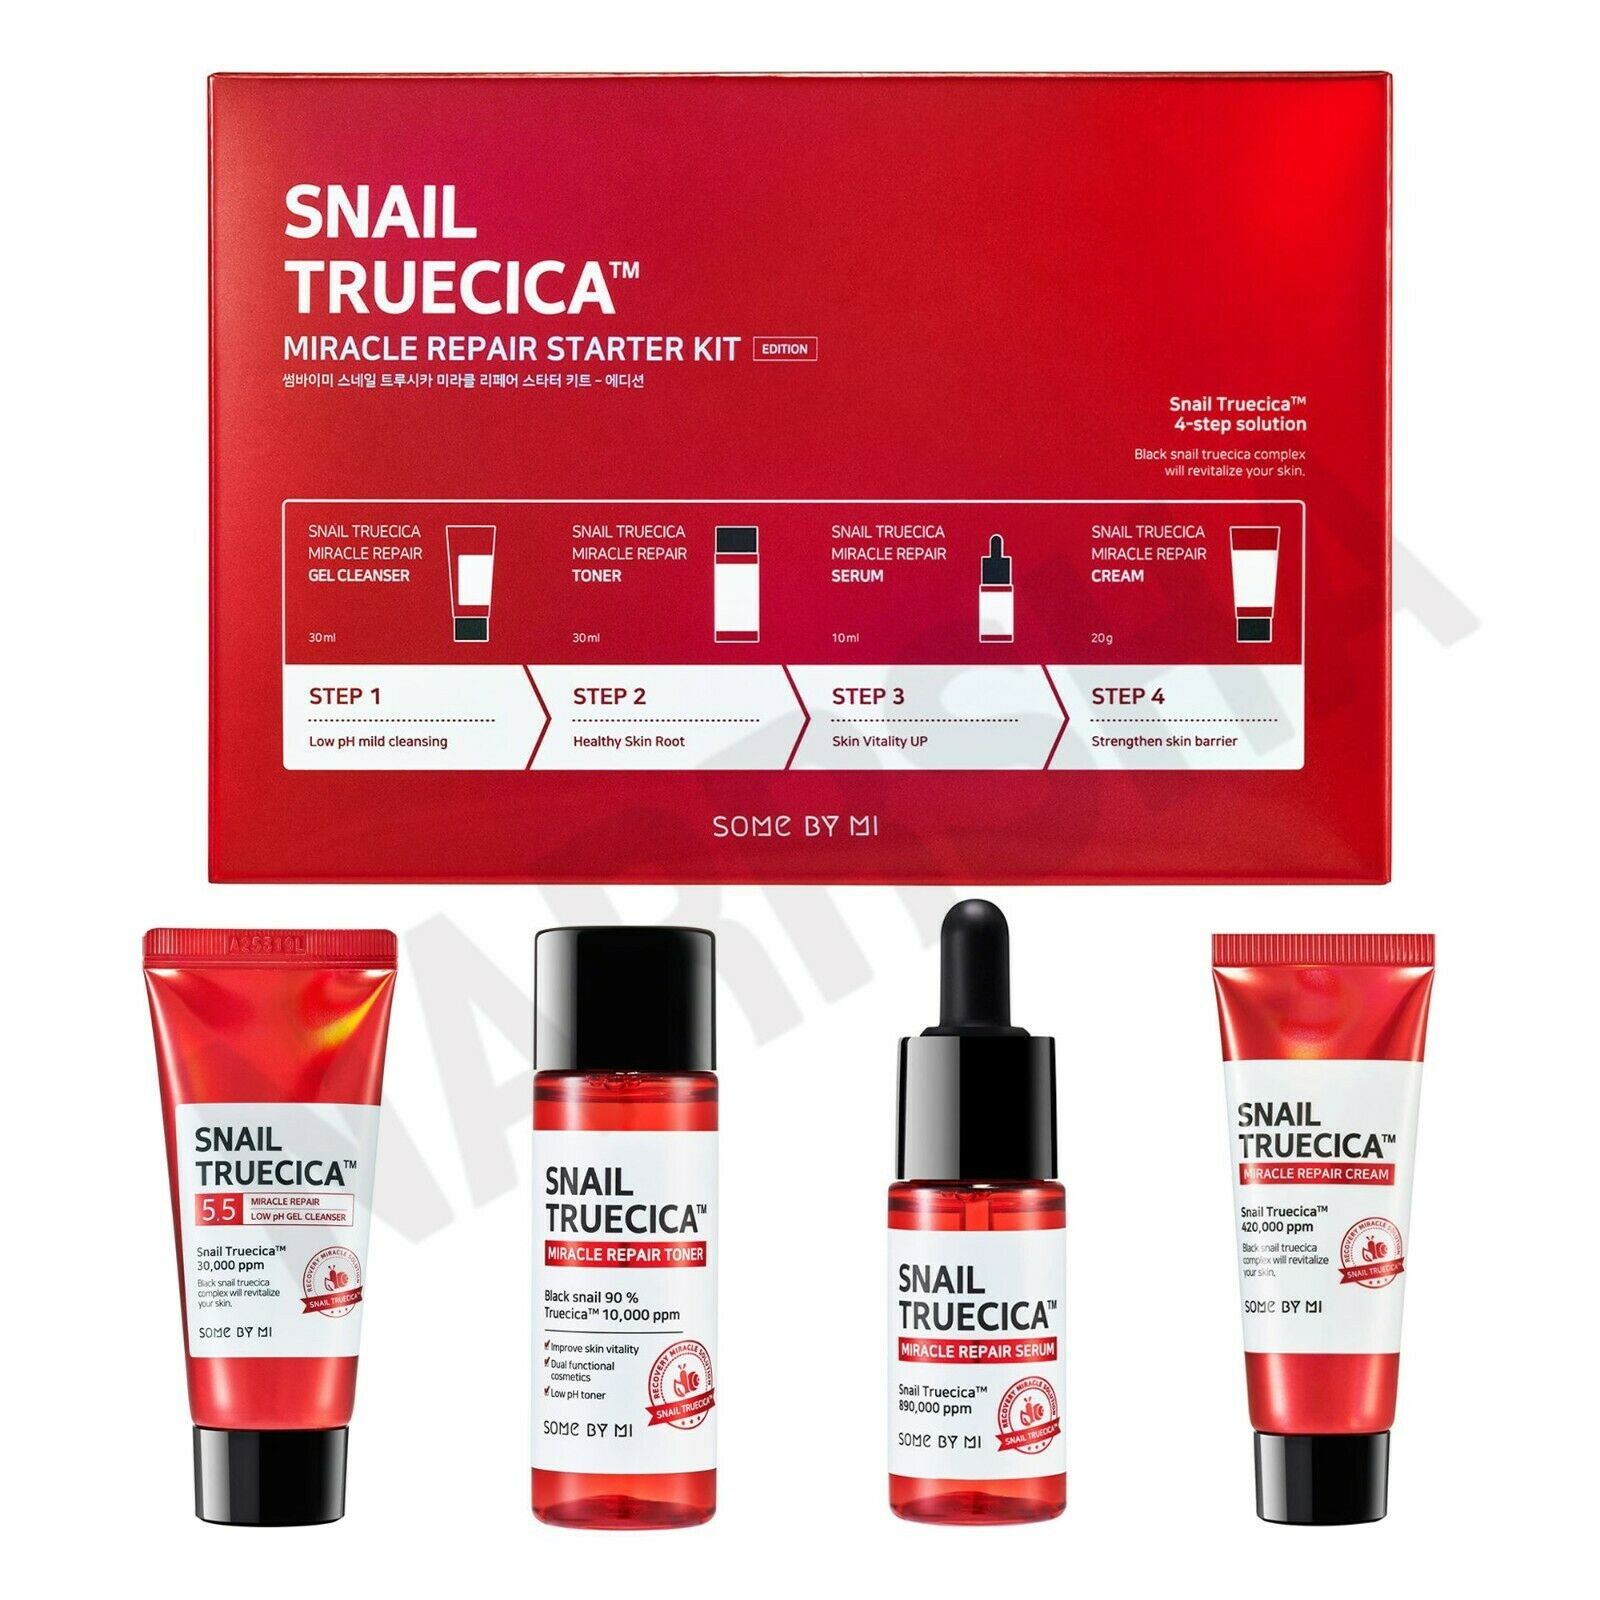 SOME BY MI Snail Truecica Kit